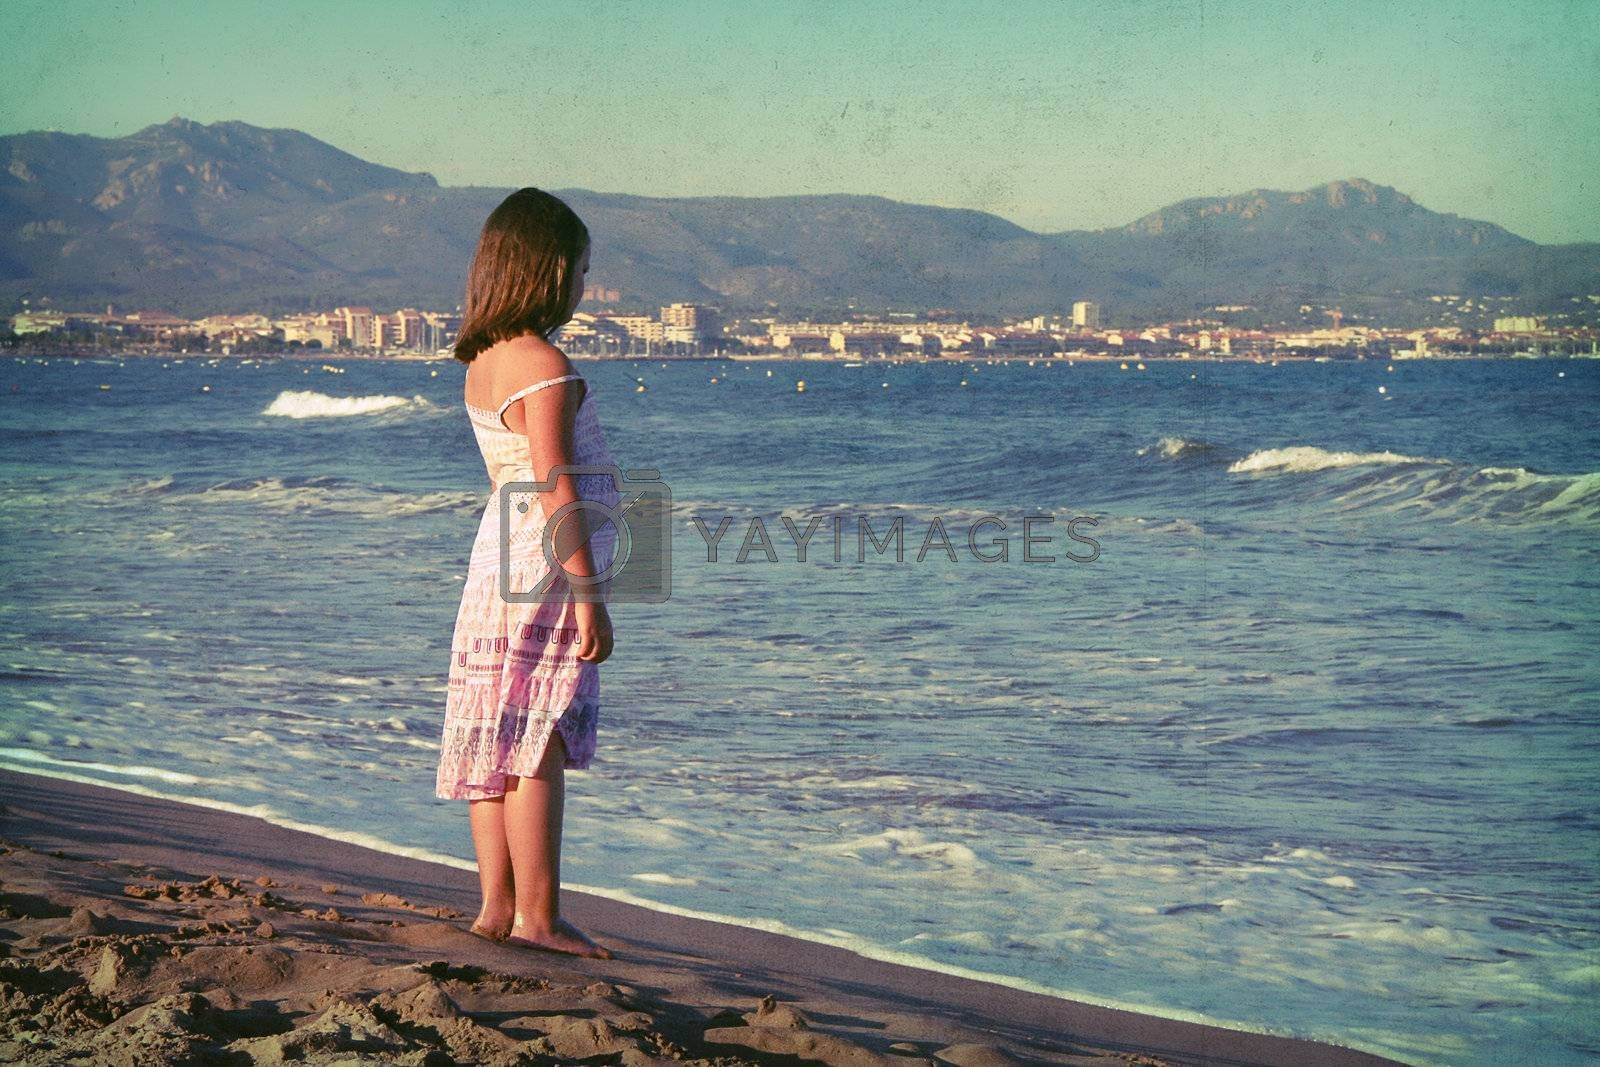 the little girl standing on the beach